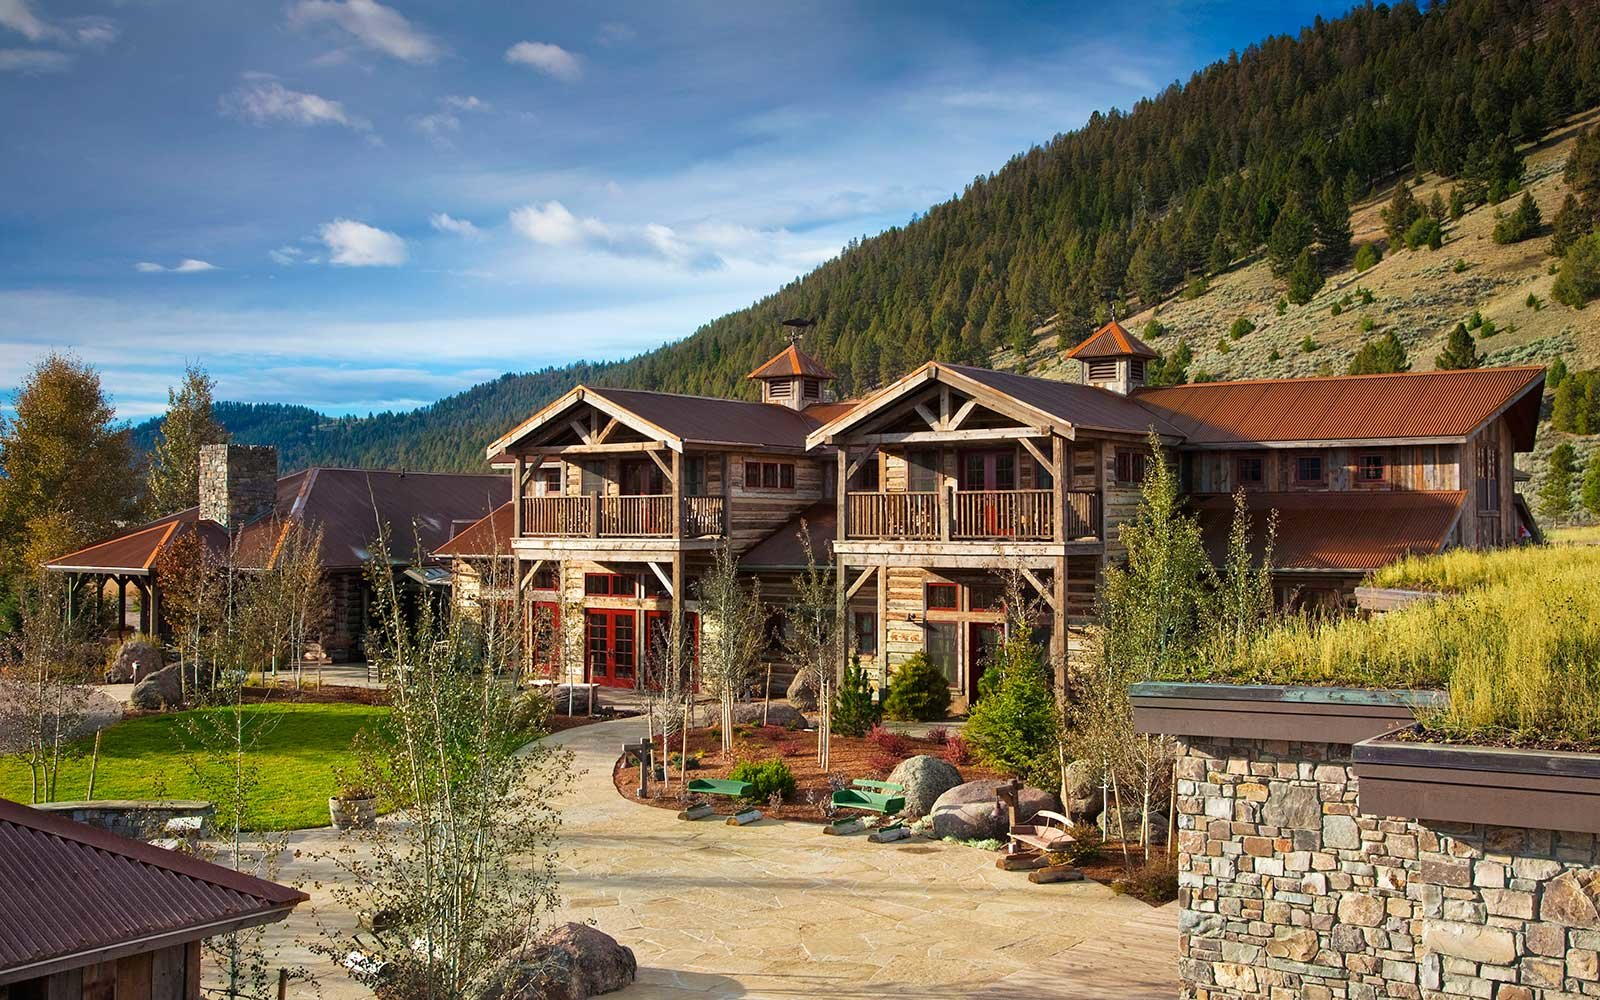 The Ranch at Rock Creek Resort Hotel in the West